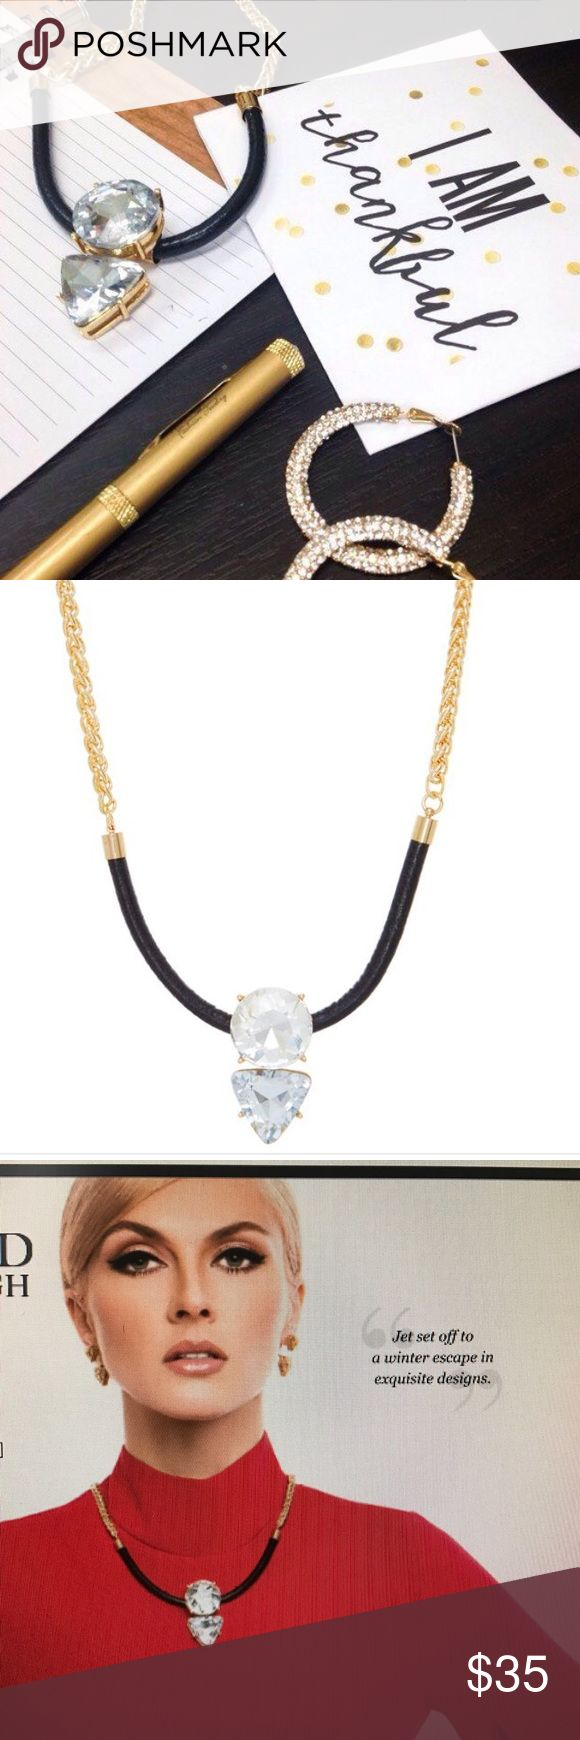 """Traci Lynn Black & Bling Necklace, 16-19"""" Beautiful fashion necklace! Comes in a gorgeous gift box! Traci Lynn Jewelry Necklaces"""